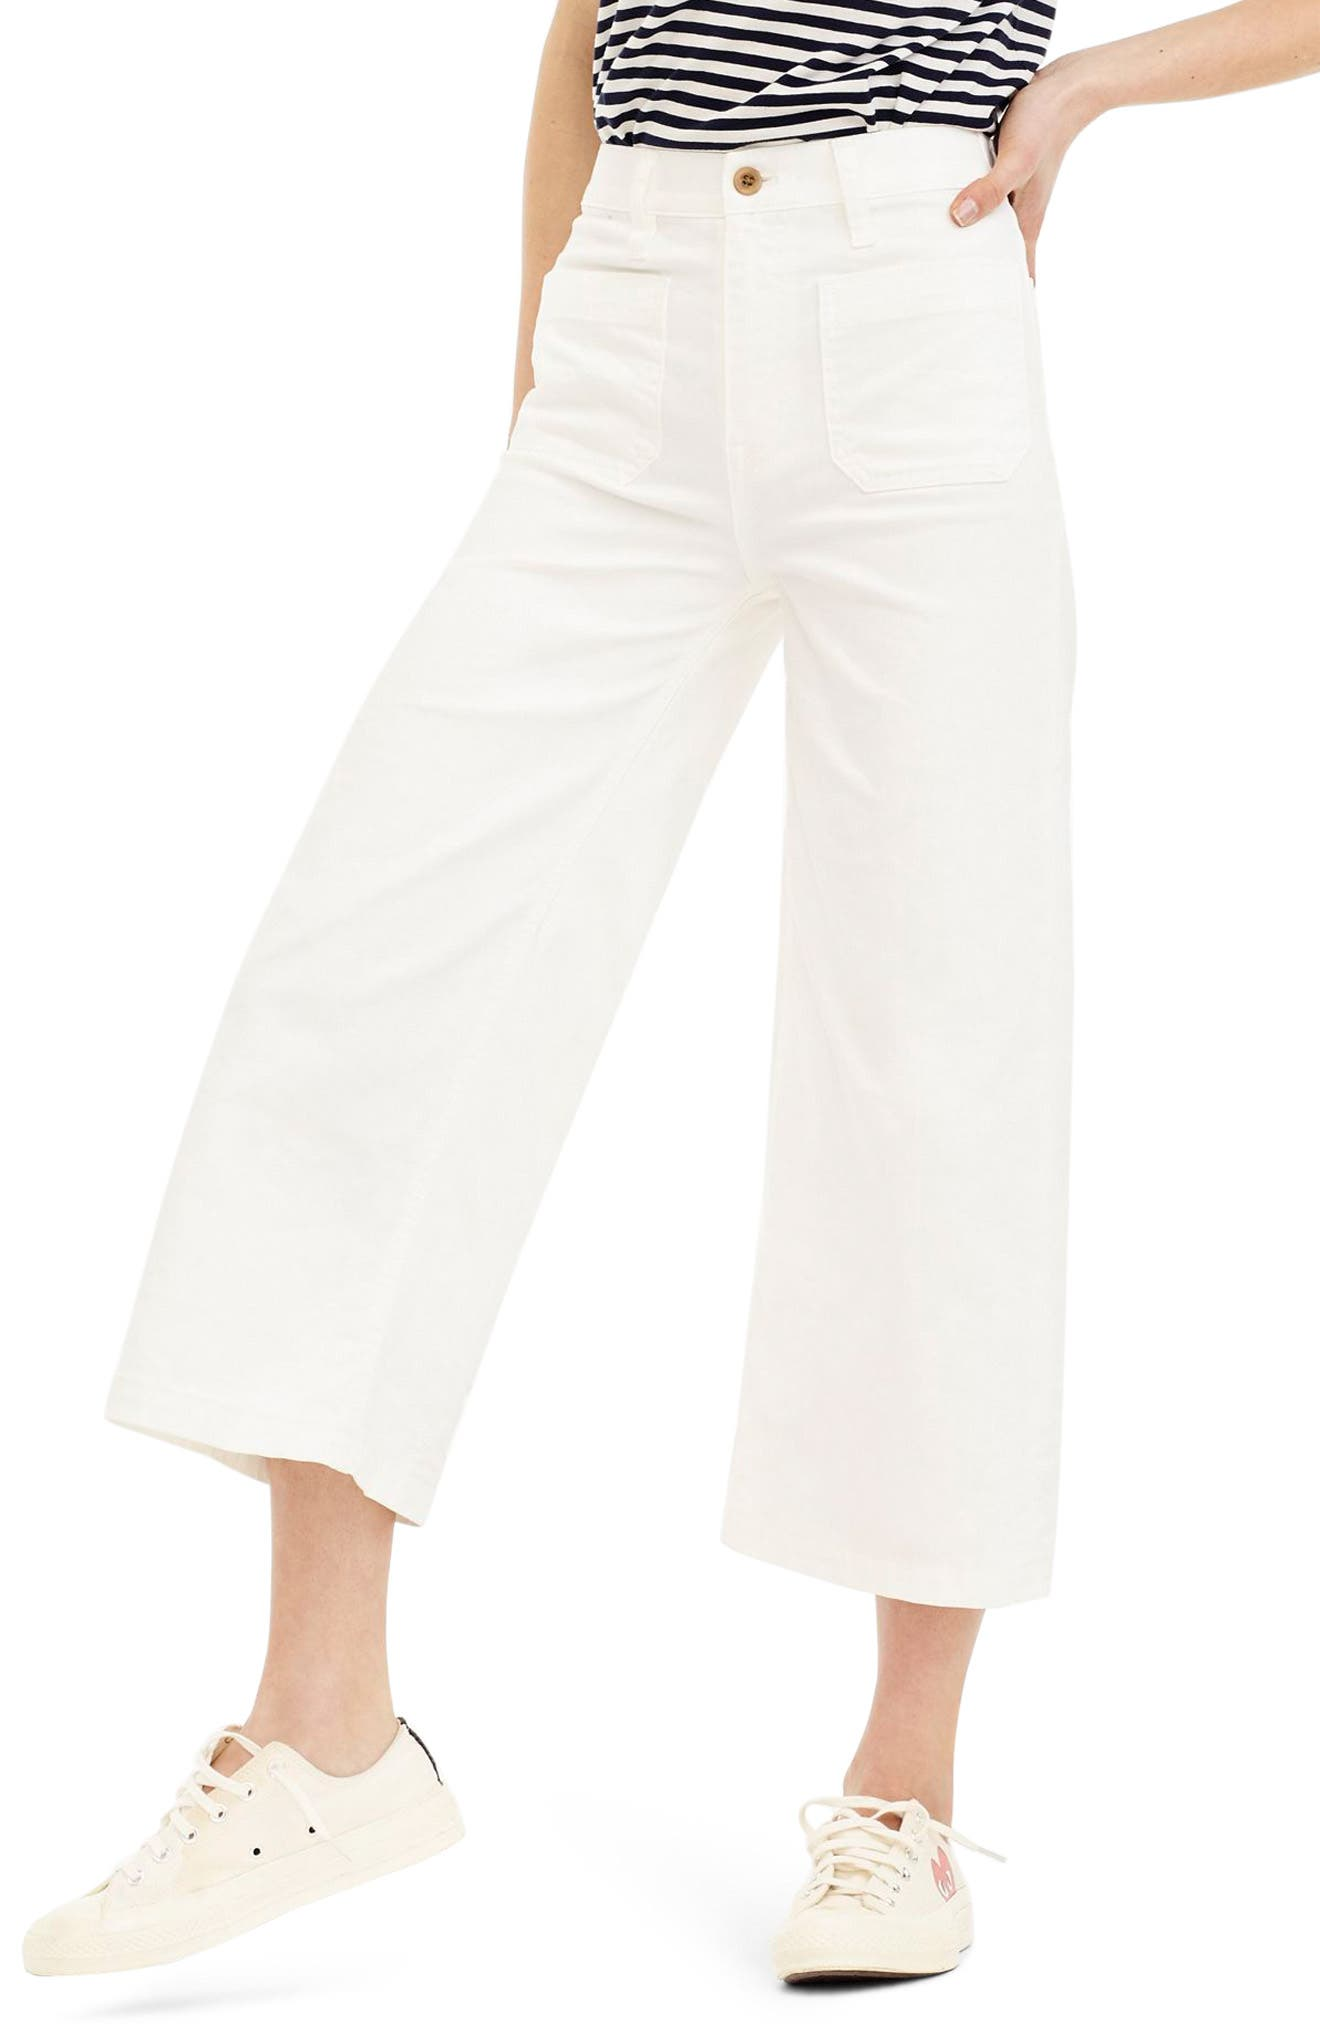 J.Crew Point Sur Wide Leg Crop Jeans (Regular & Petite)